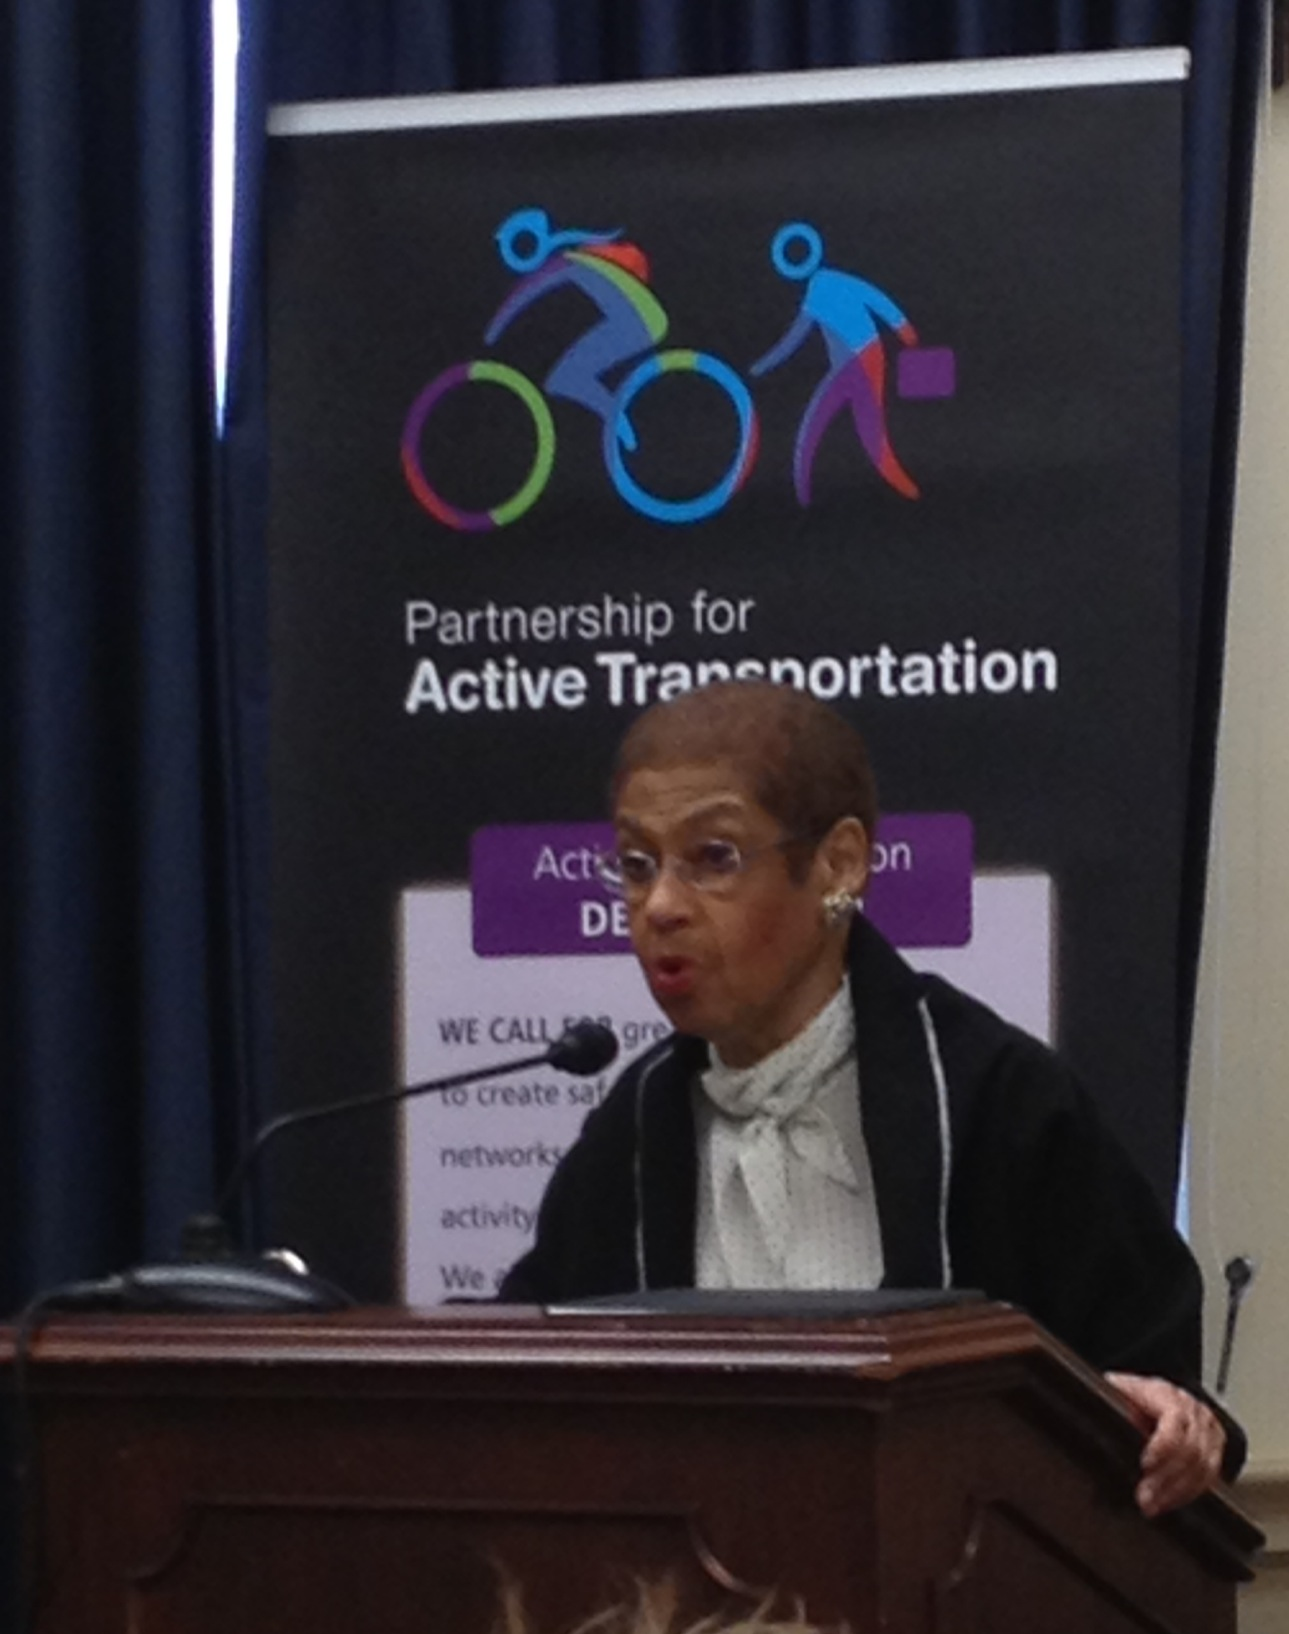 DC Delegate Eleanor Holmes Norton helped introduce the new Partnership for Active Transportation today on Capitol Hill. Photo: Tanya Snyder